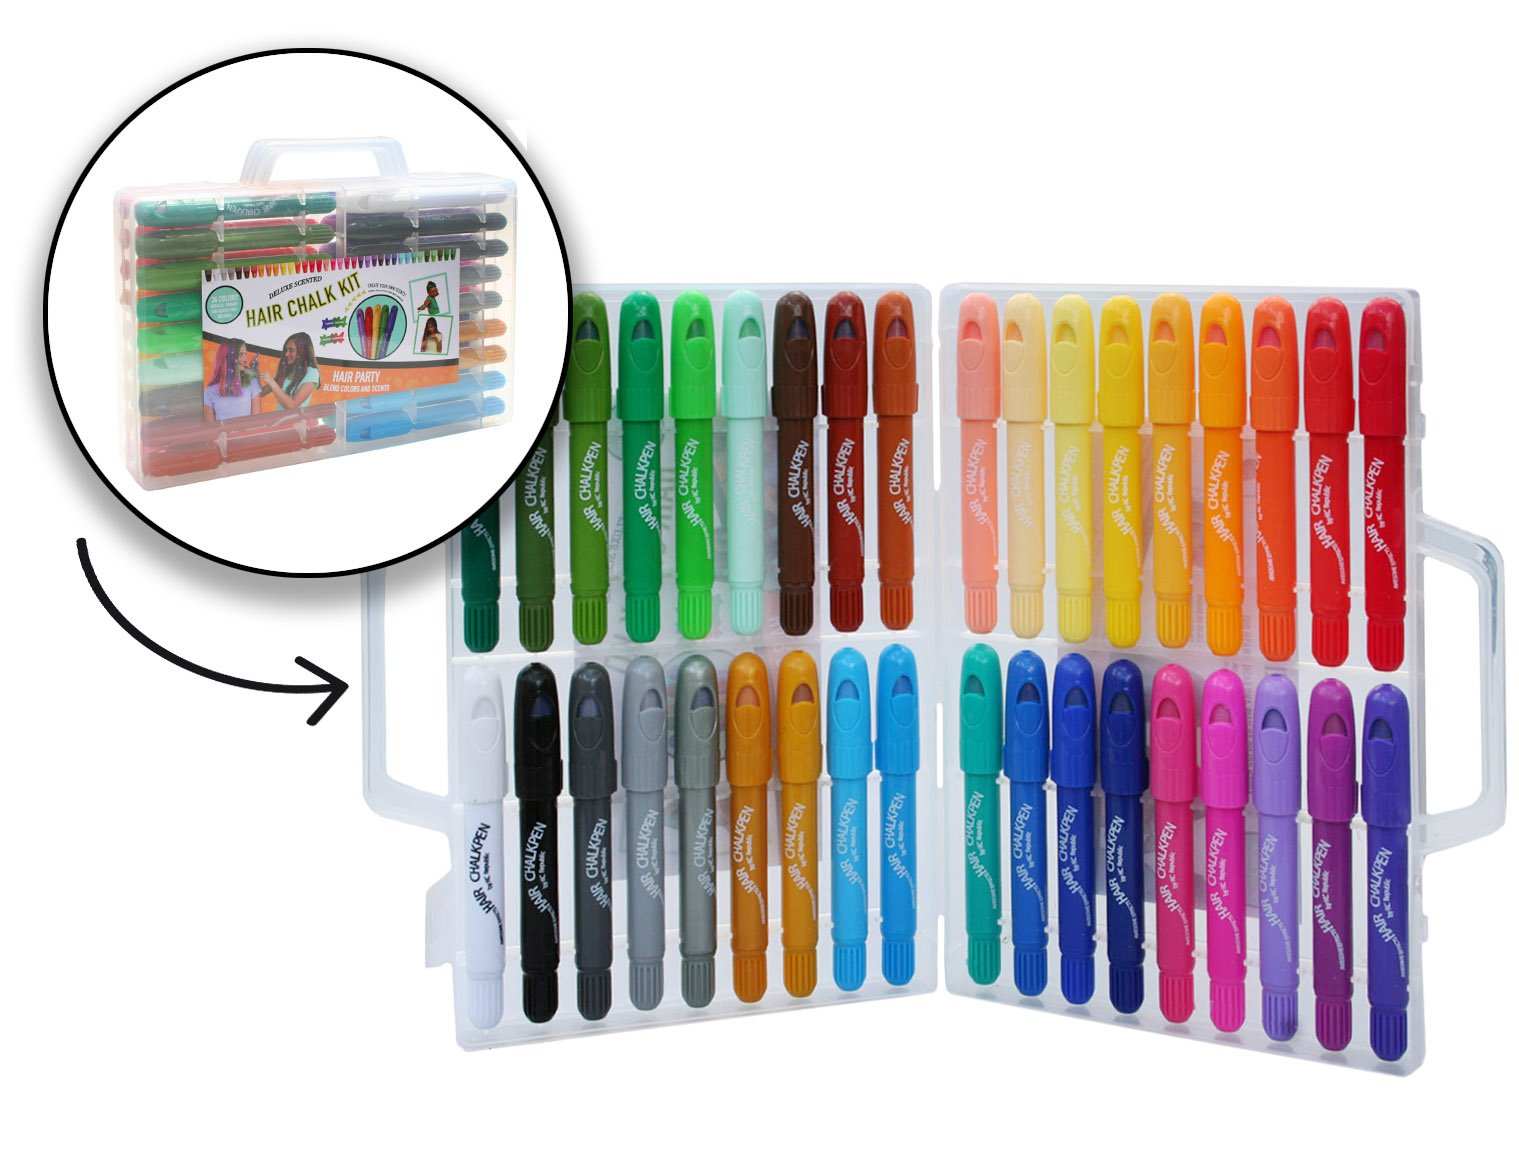 32 Color Hair Chalk Pen Set Boldest and Brightest Metallic and Rainbow